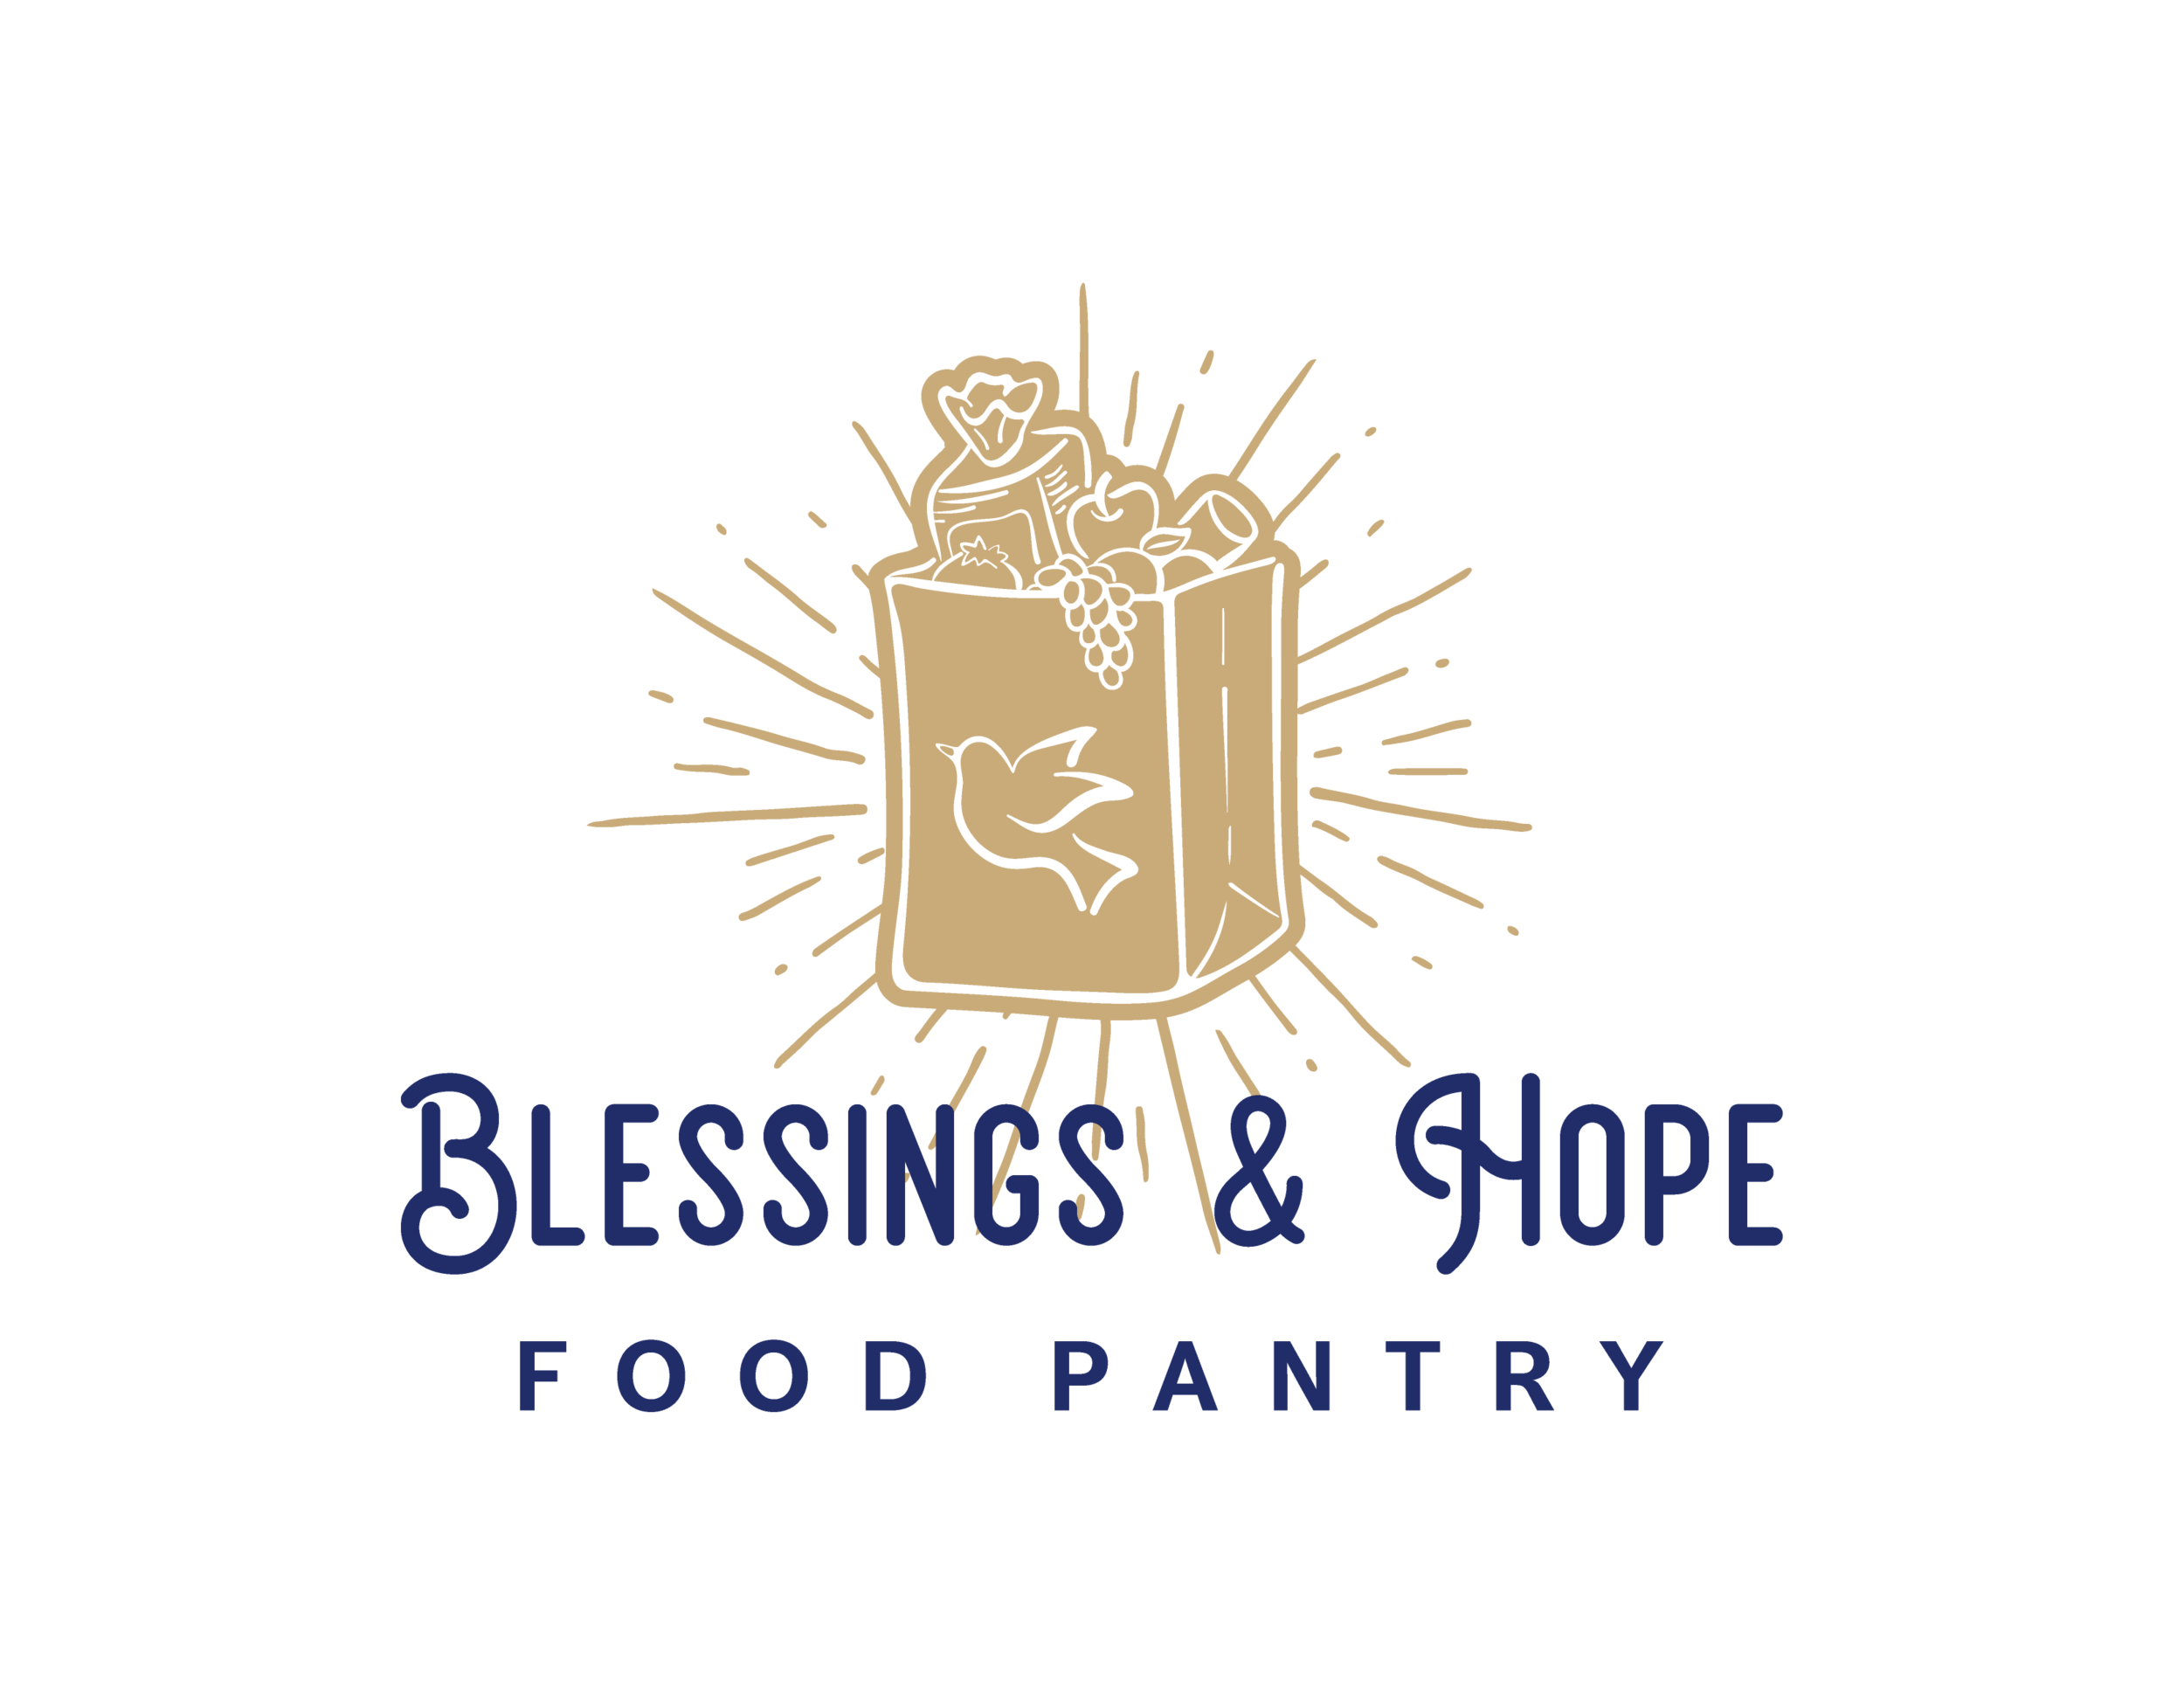 Blessings and Hope Food Pantry Logo-01.png